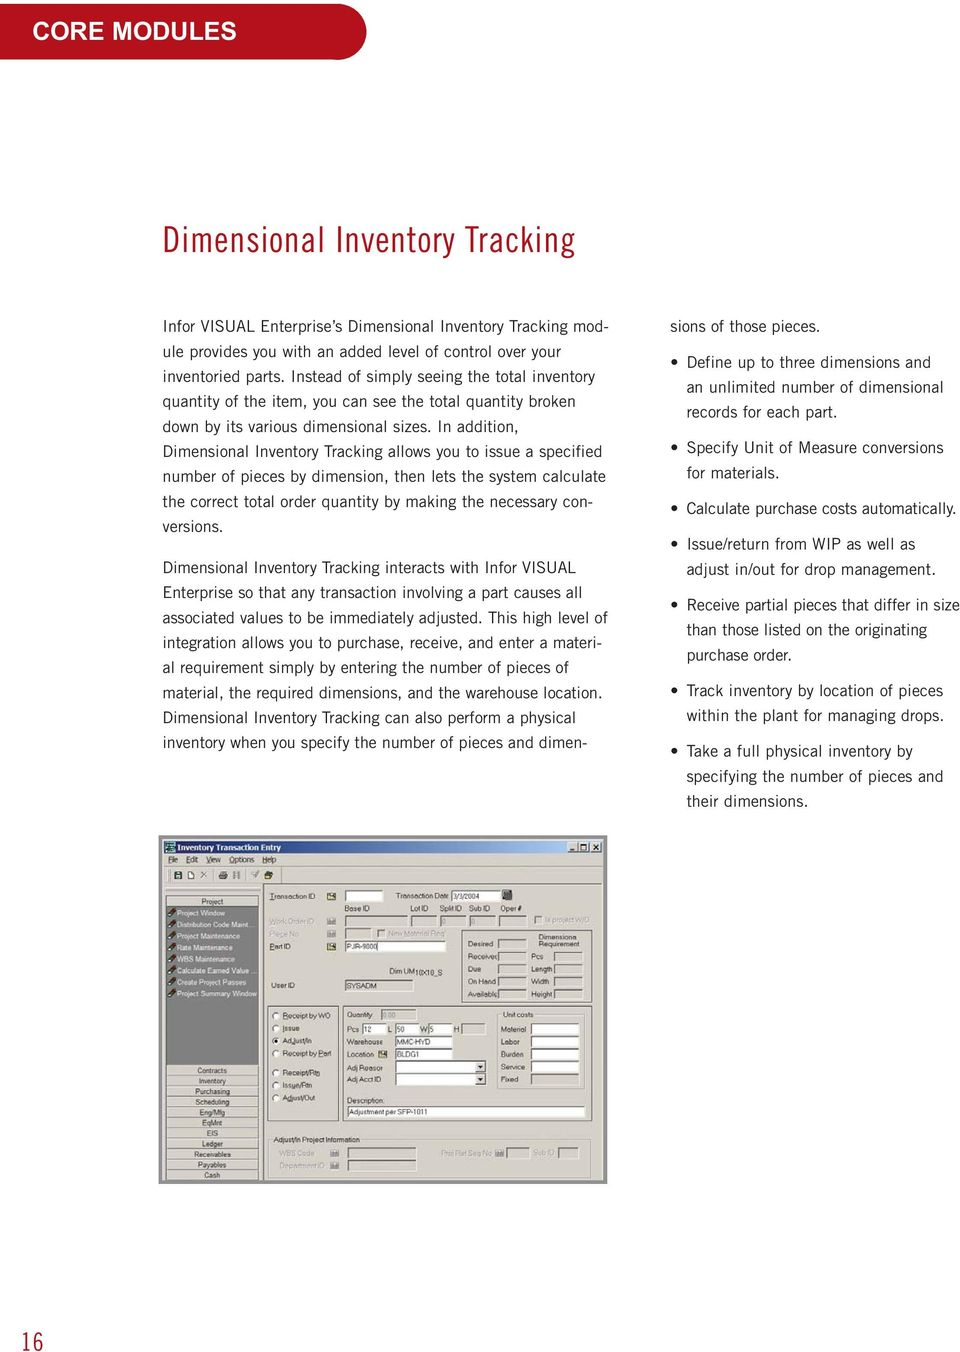 In addition, Dimensional Inventory Tracking allows you to issue a specified number of pieces by dimension, then lets the system calculate the correct total order quantity by making the necessary